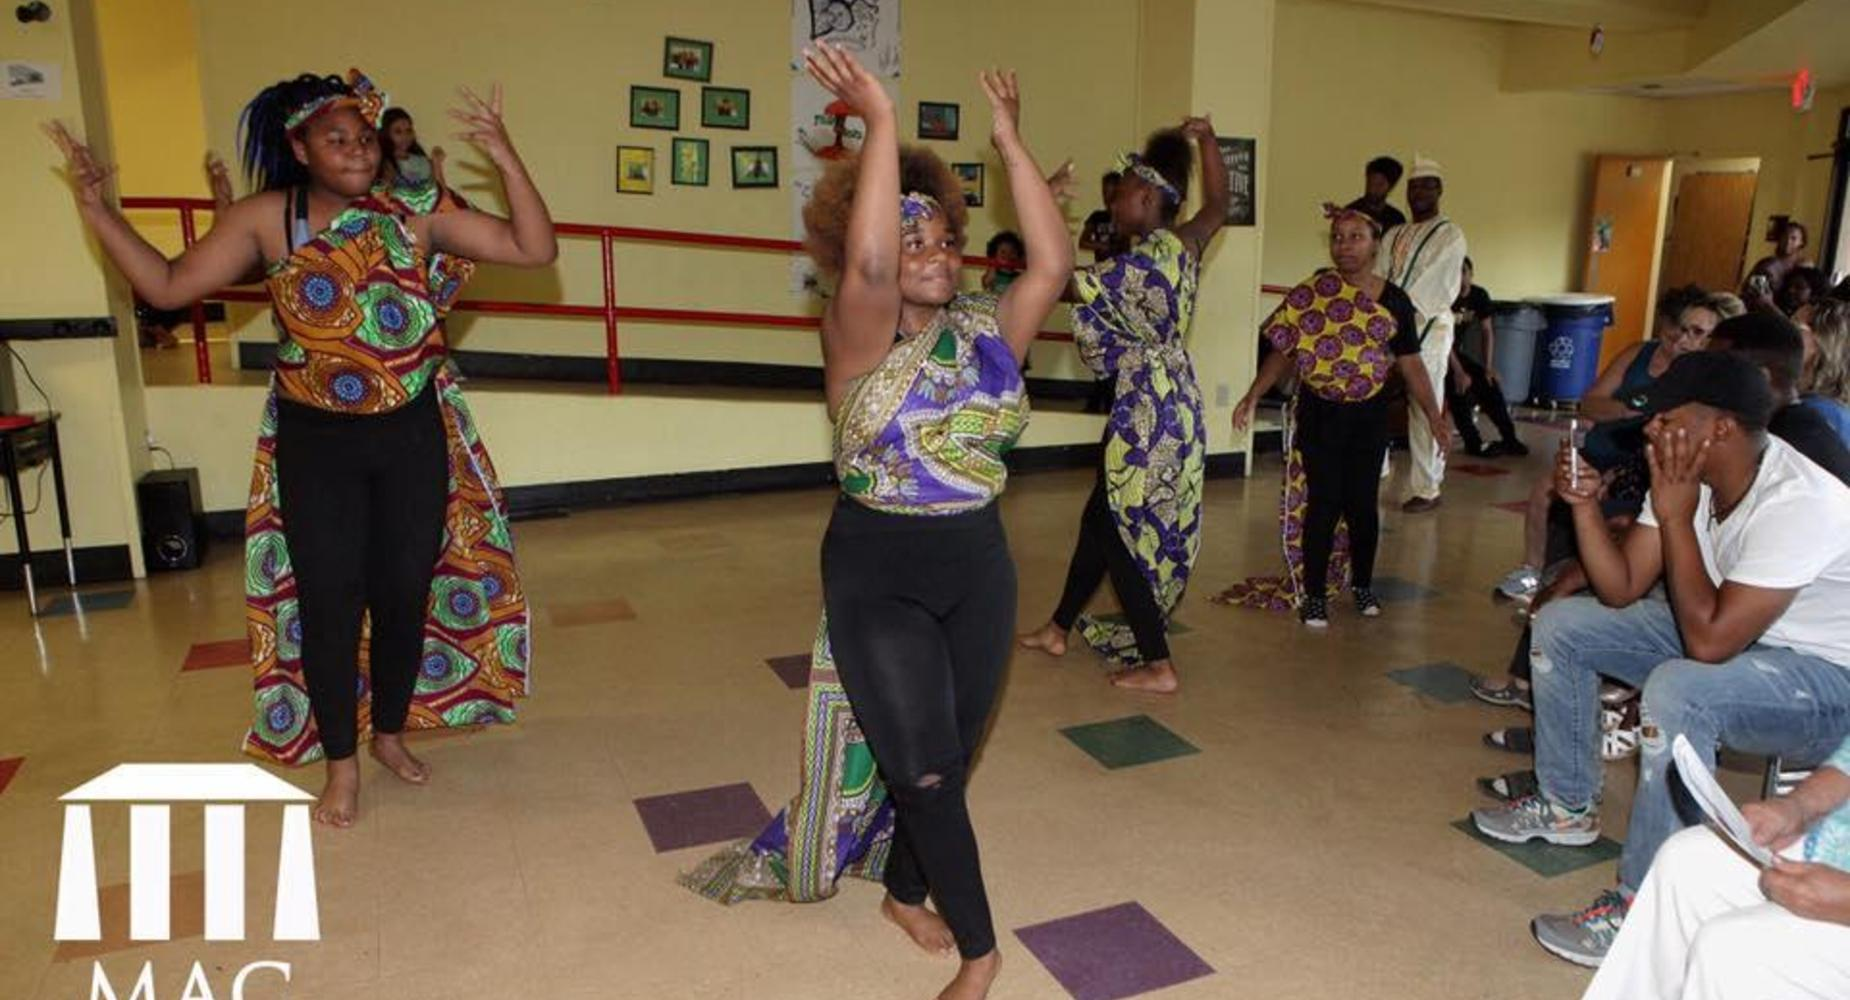 West African Dance choreographed by Sinclair Jamison